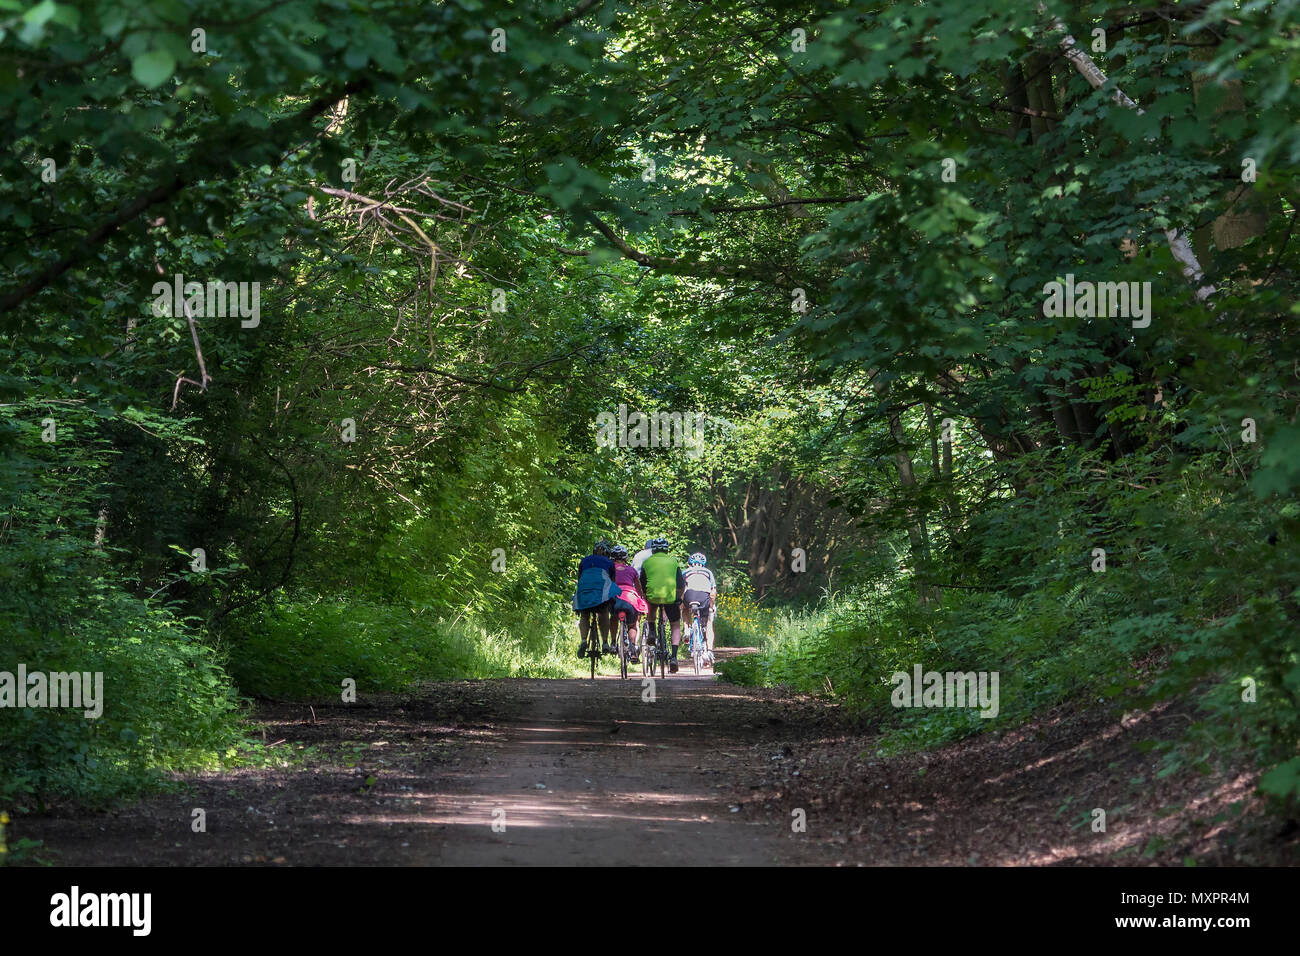 Former railway line now a cycle and walking route with shady trees. - Stock Image